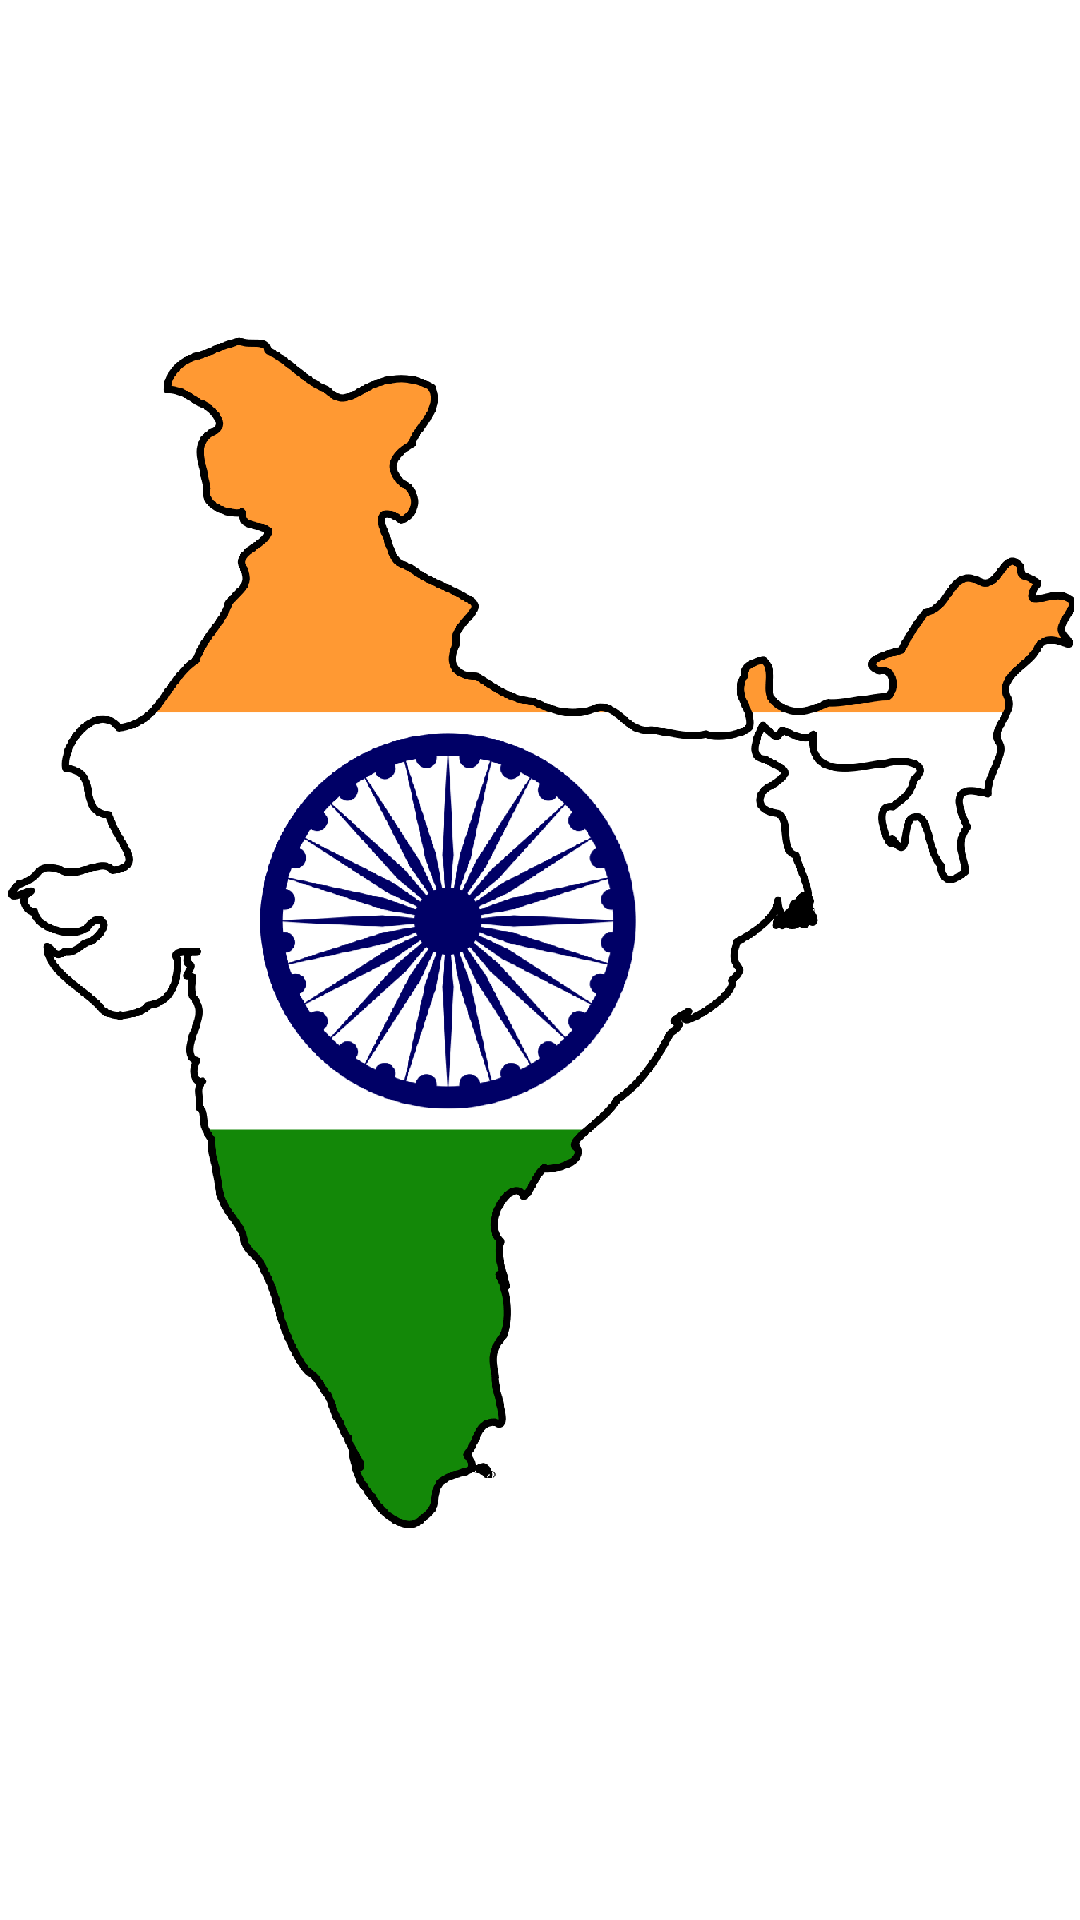 India Map Wallpapers Top Free India Map Backgrounds Wallpaperaccess